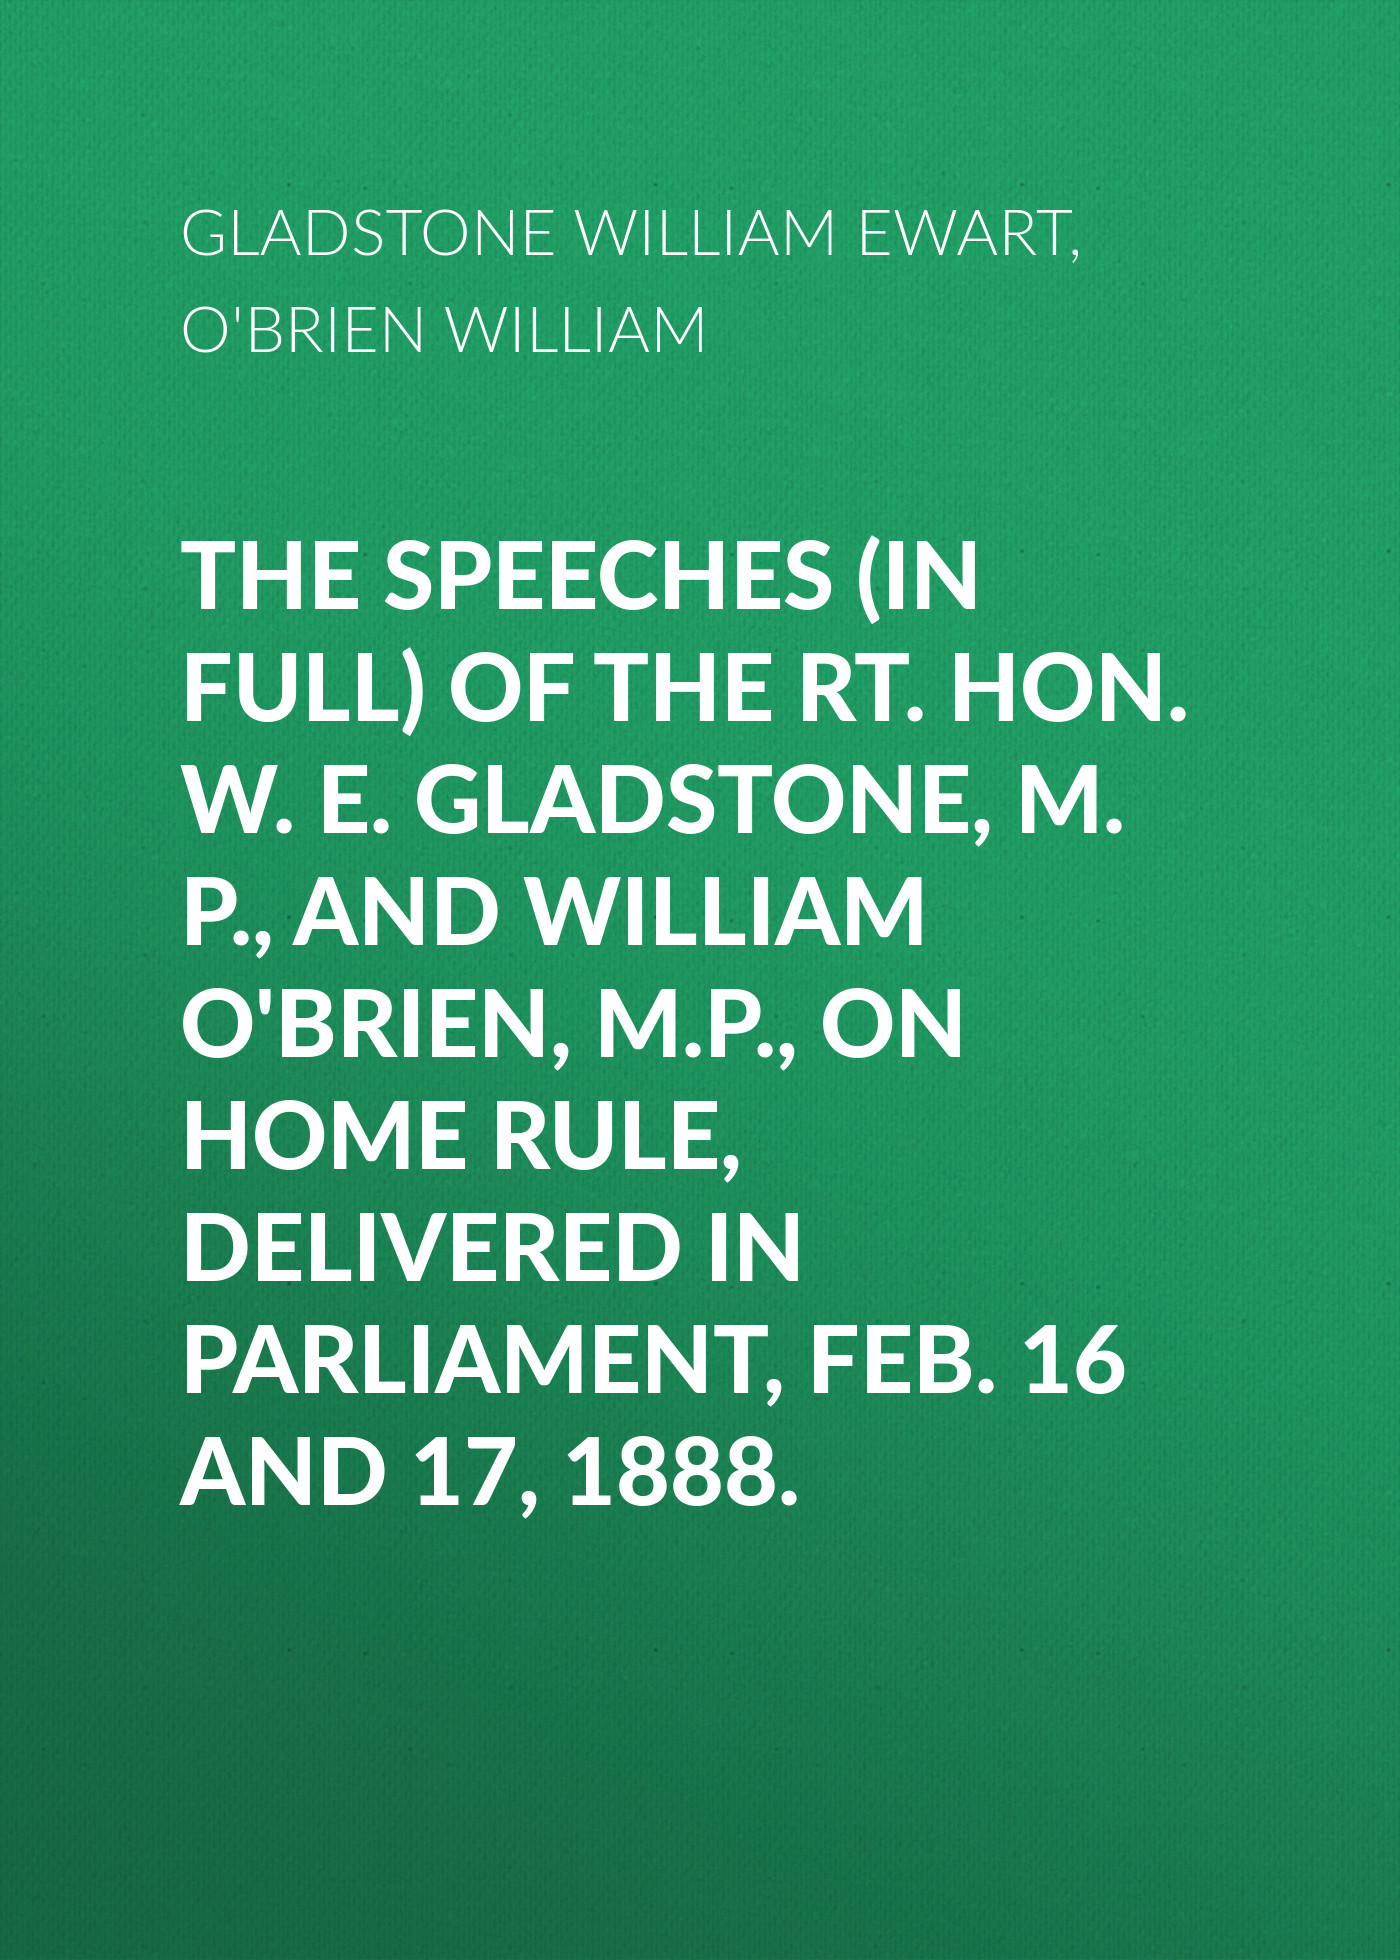 Gladstone William Ewart The Speeches (In Full) of the Rt. Hon. W. E. Gladstone, M.P., and William O'Brien, M.P., on Home Rule, Delivered in Parliament, Feb. 16 and 17, 1888. gladstone william ewart studies on homer and the homeric age vol 3 of 3